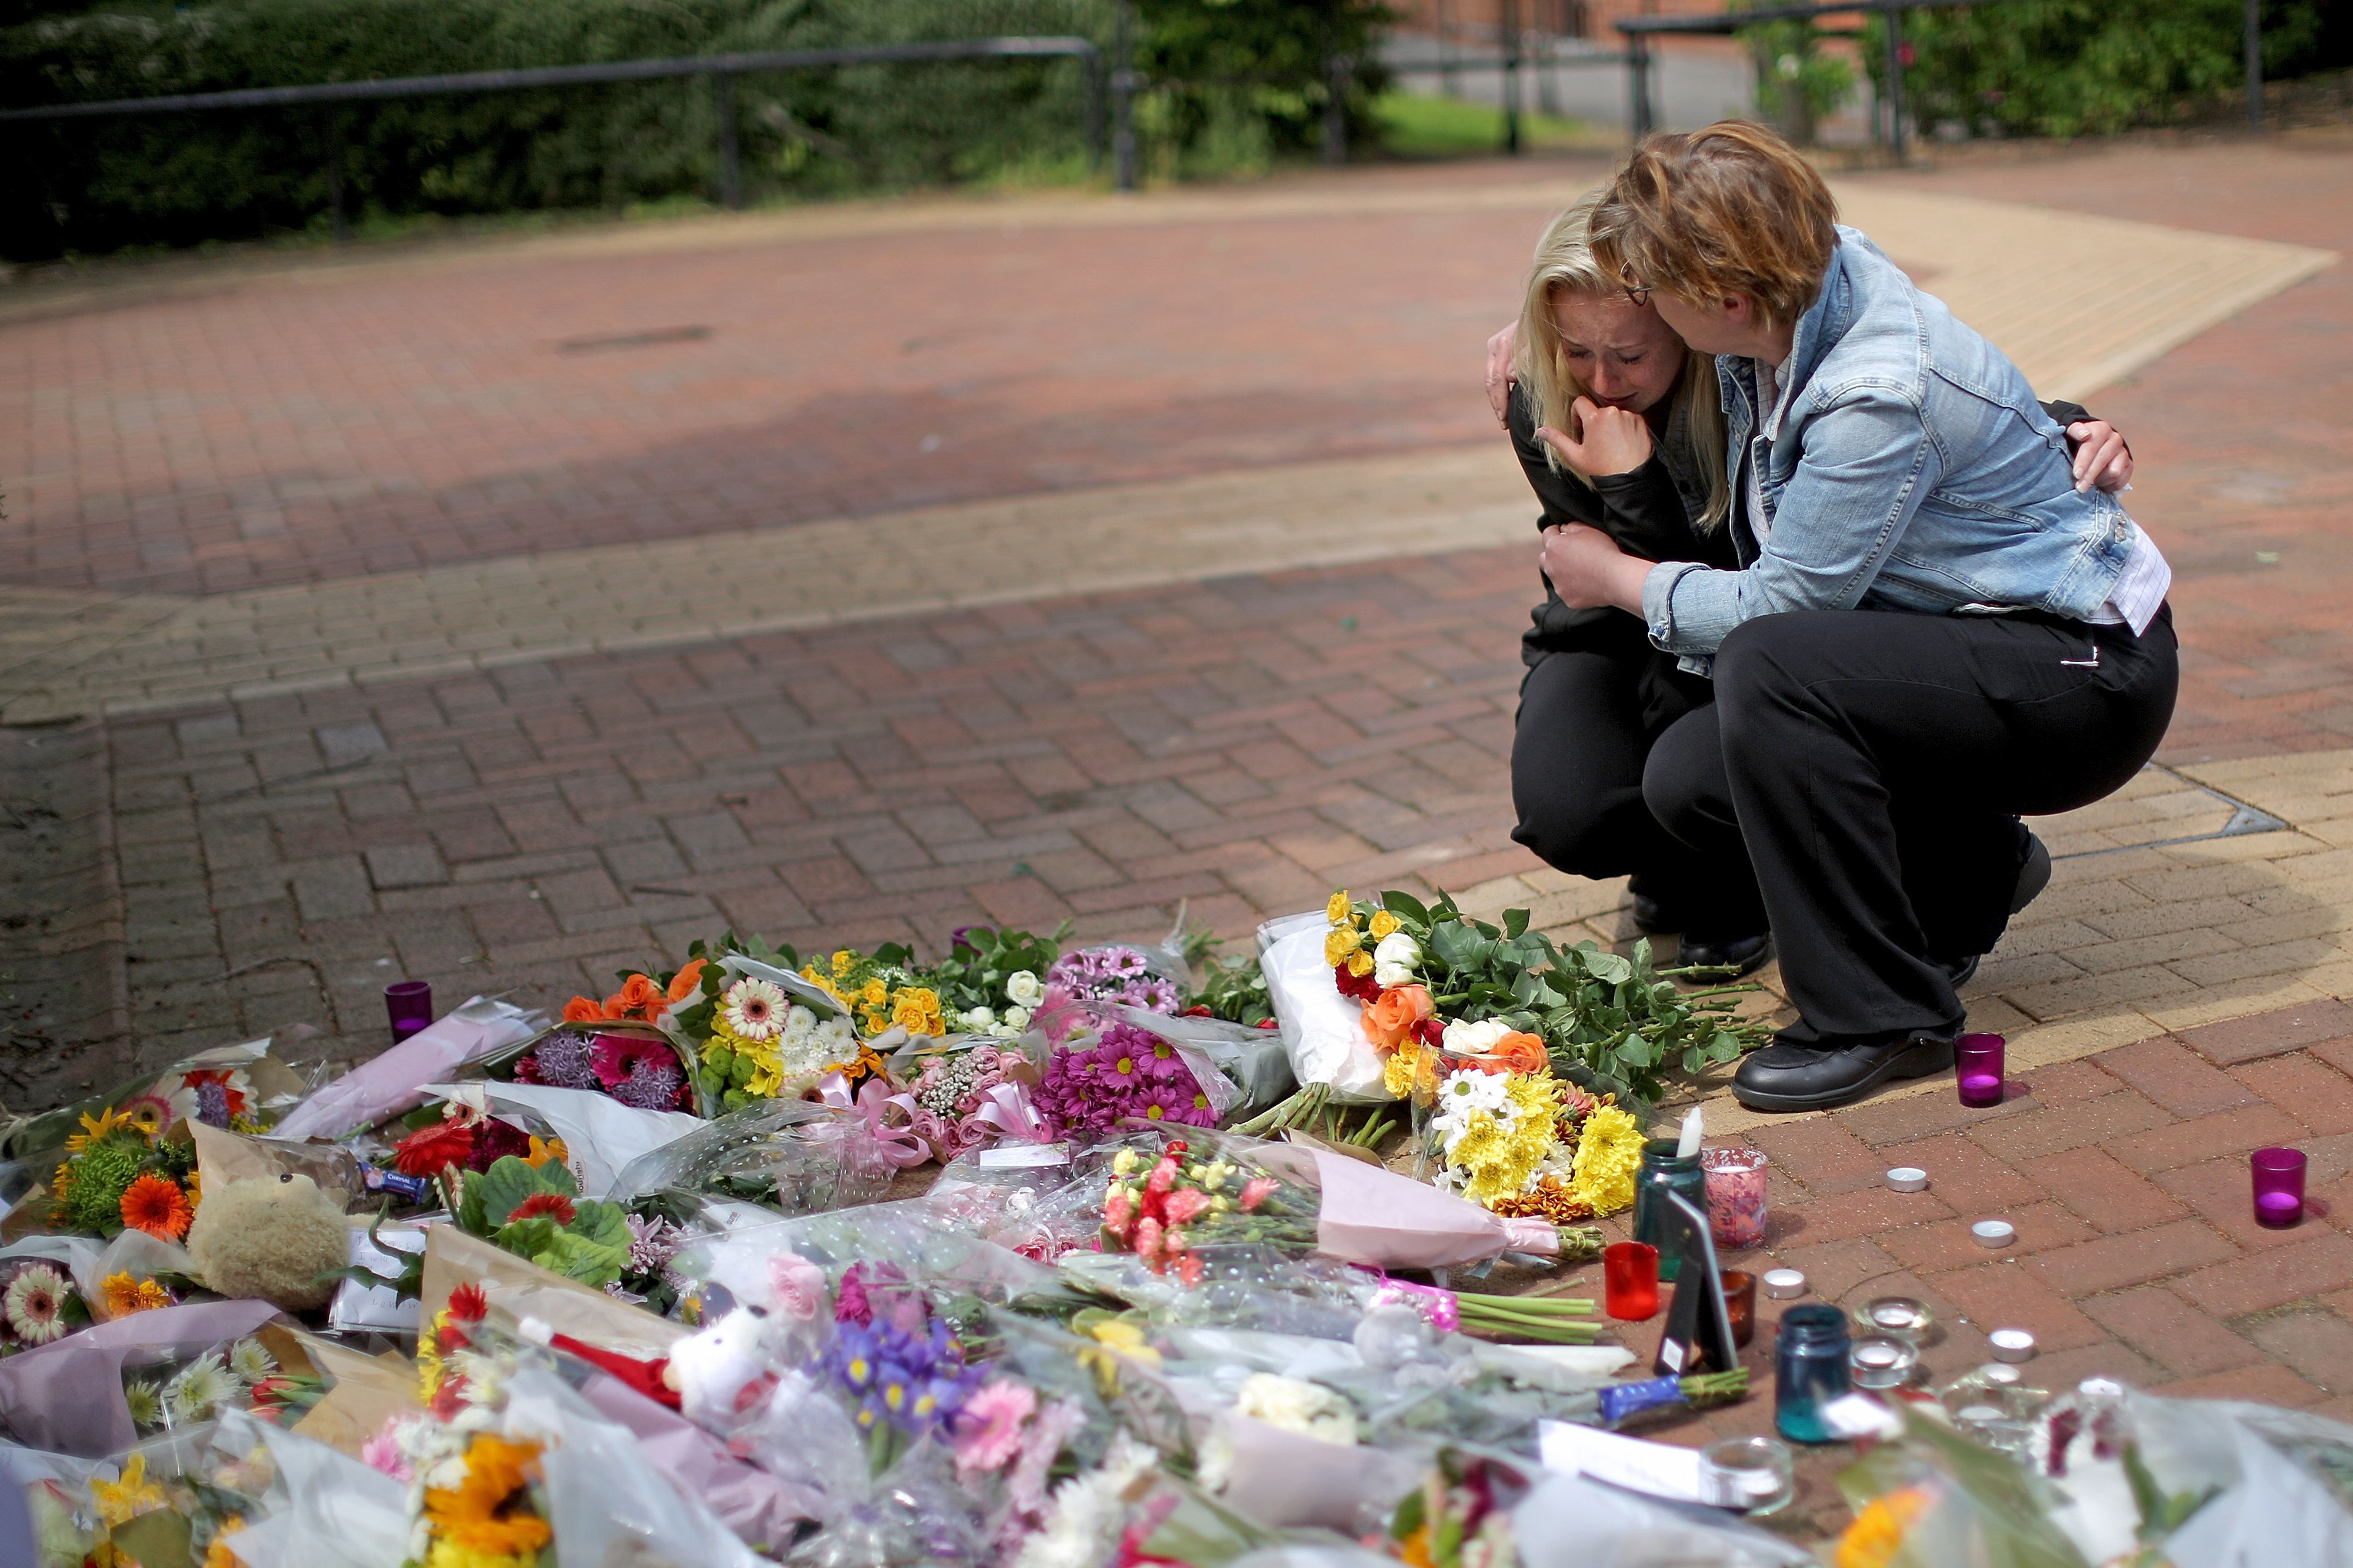 Manchester Bombing Victim's Family Criticises Government After Death Of